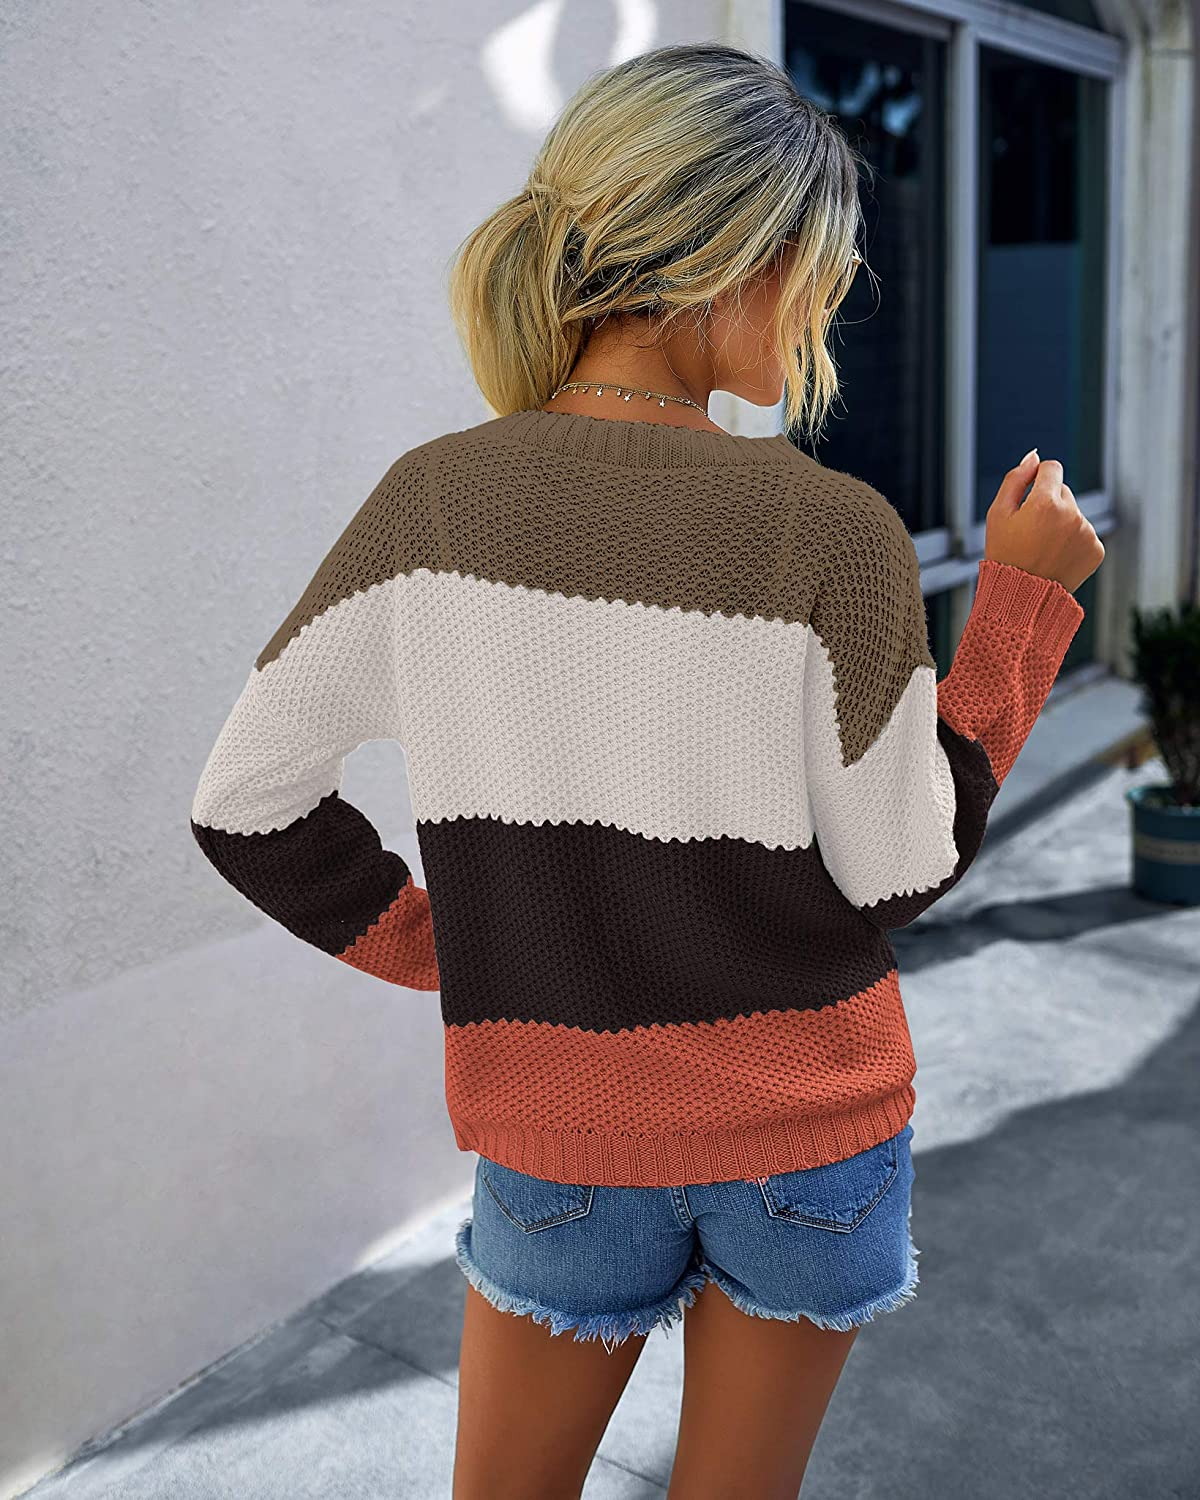 PRETTYGARDEN Women's Casual Striped Color Block Knit Sweater Long Sleeve Crew Neck Loose Pullover Tunic Blouse Tops